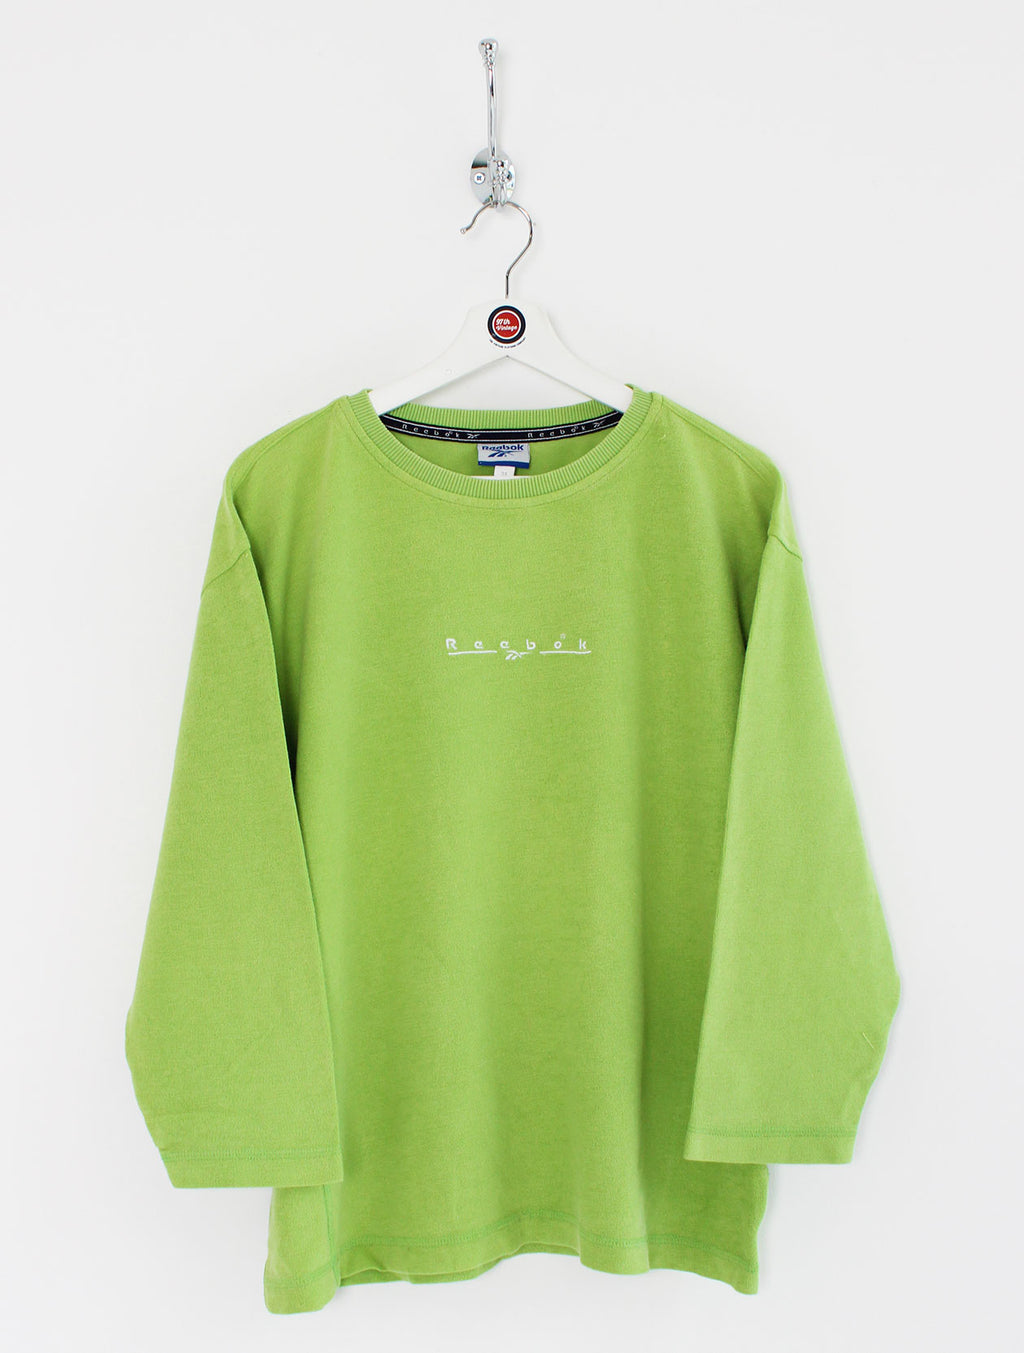 Women's Reebok Sweatshirt (XL)